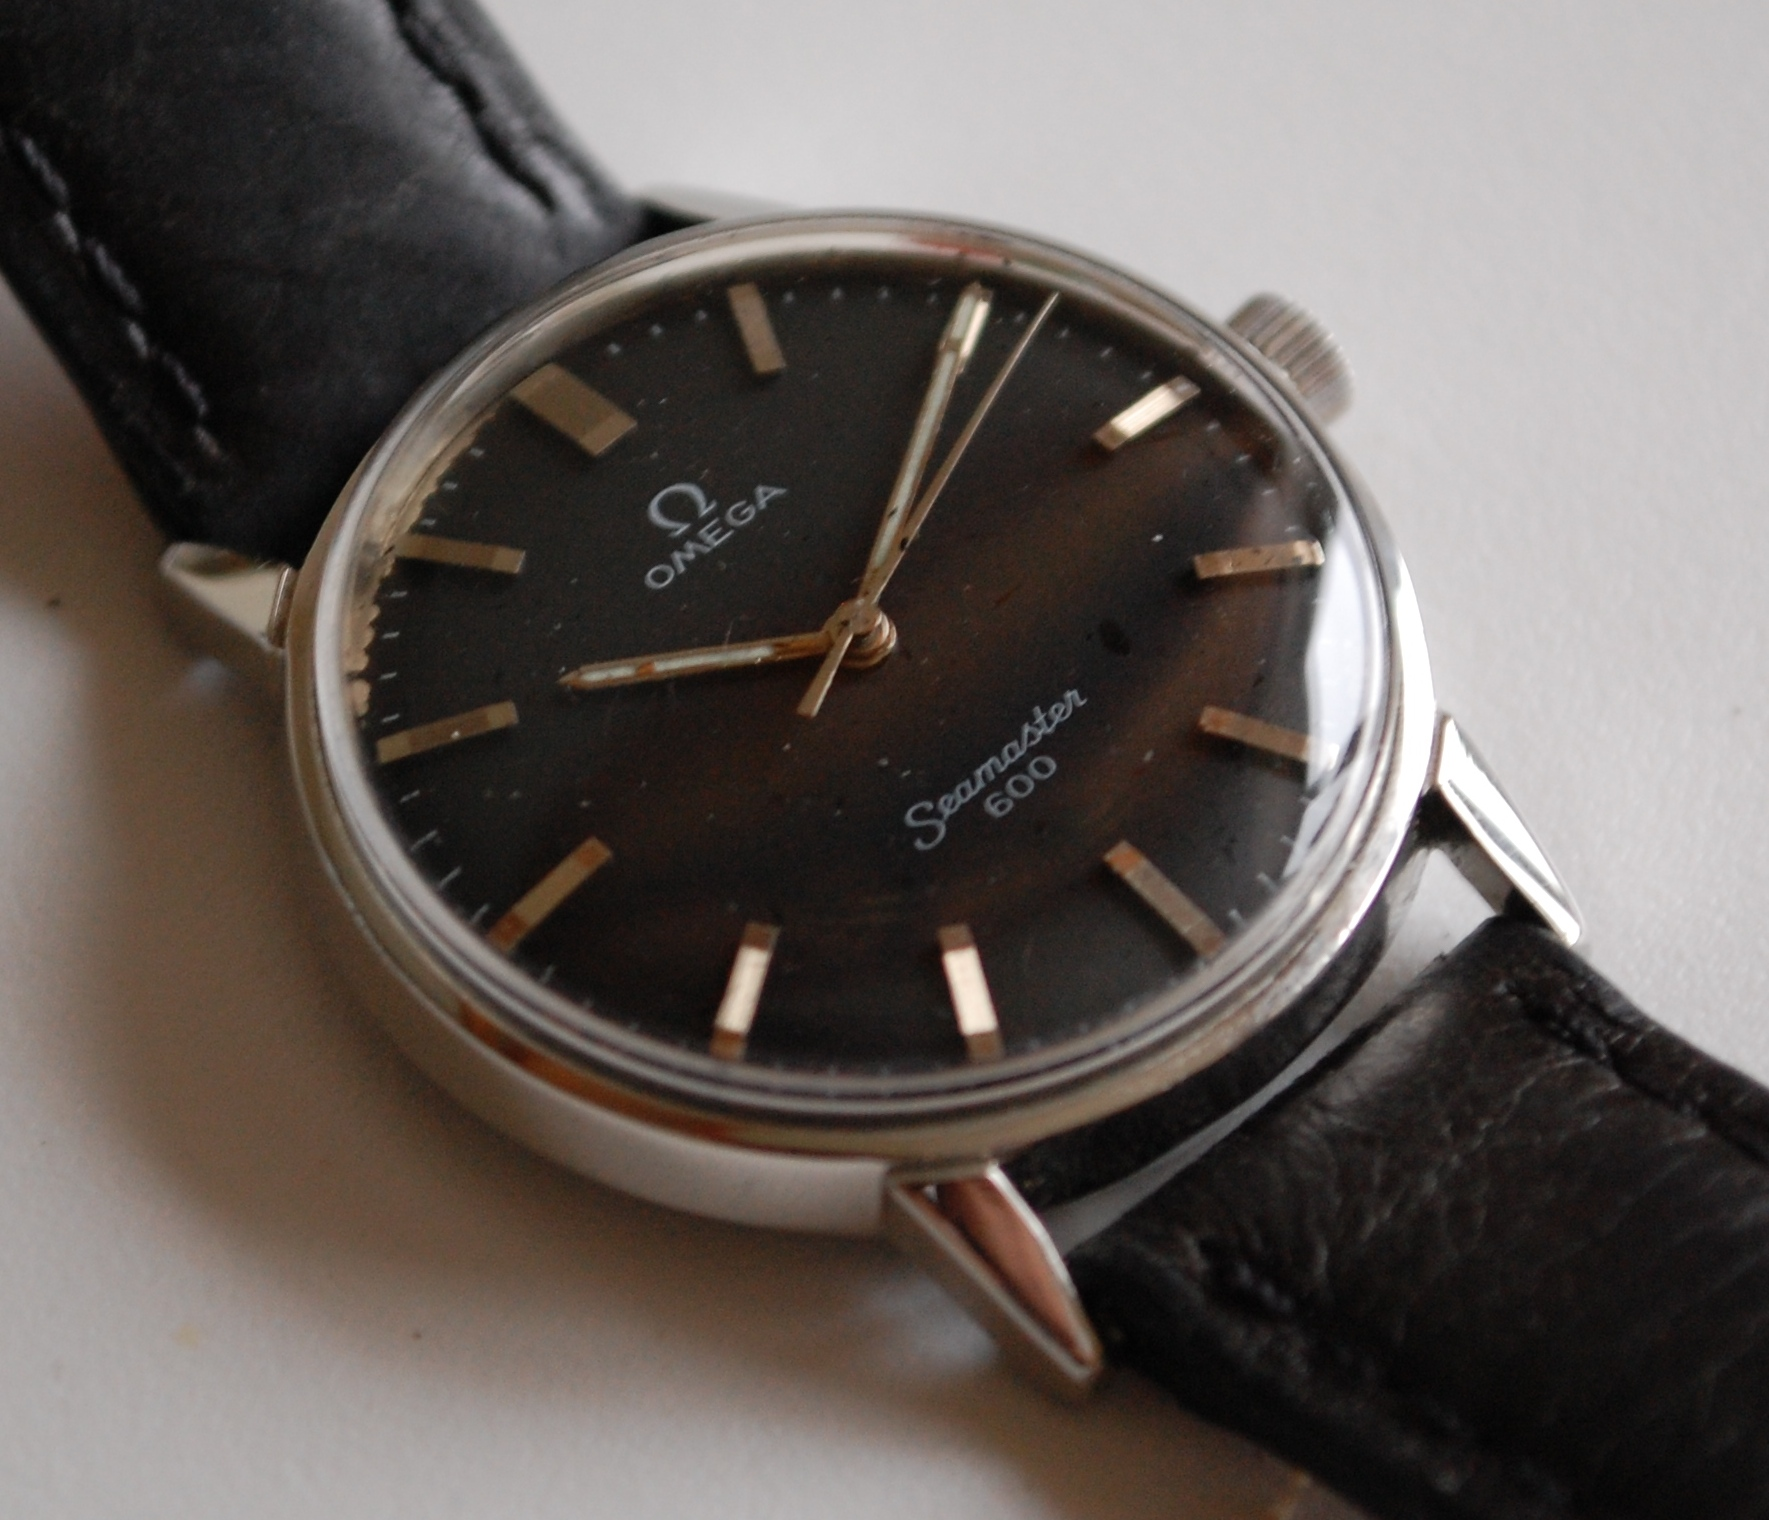 SOLD 1966 Omega Seamaster 600 Military - Birth Year Watches